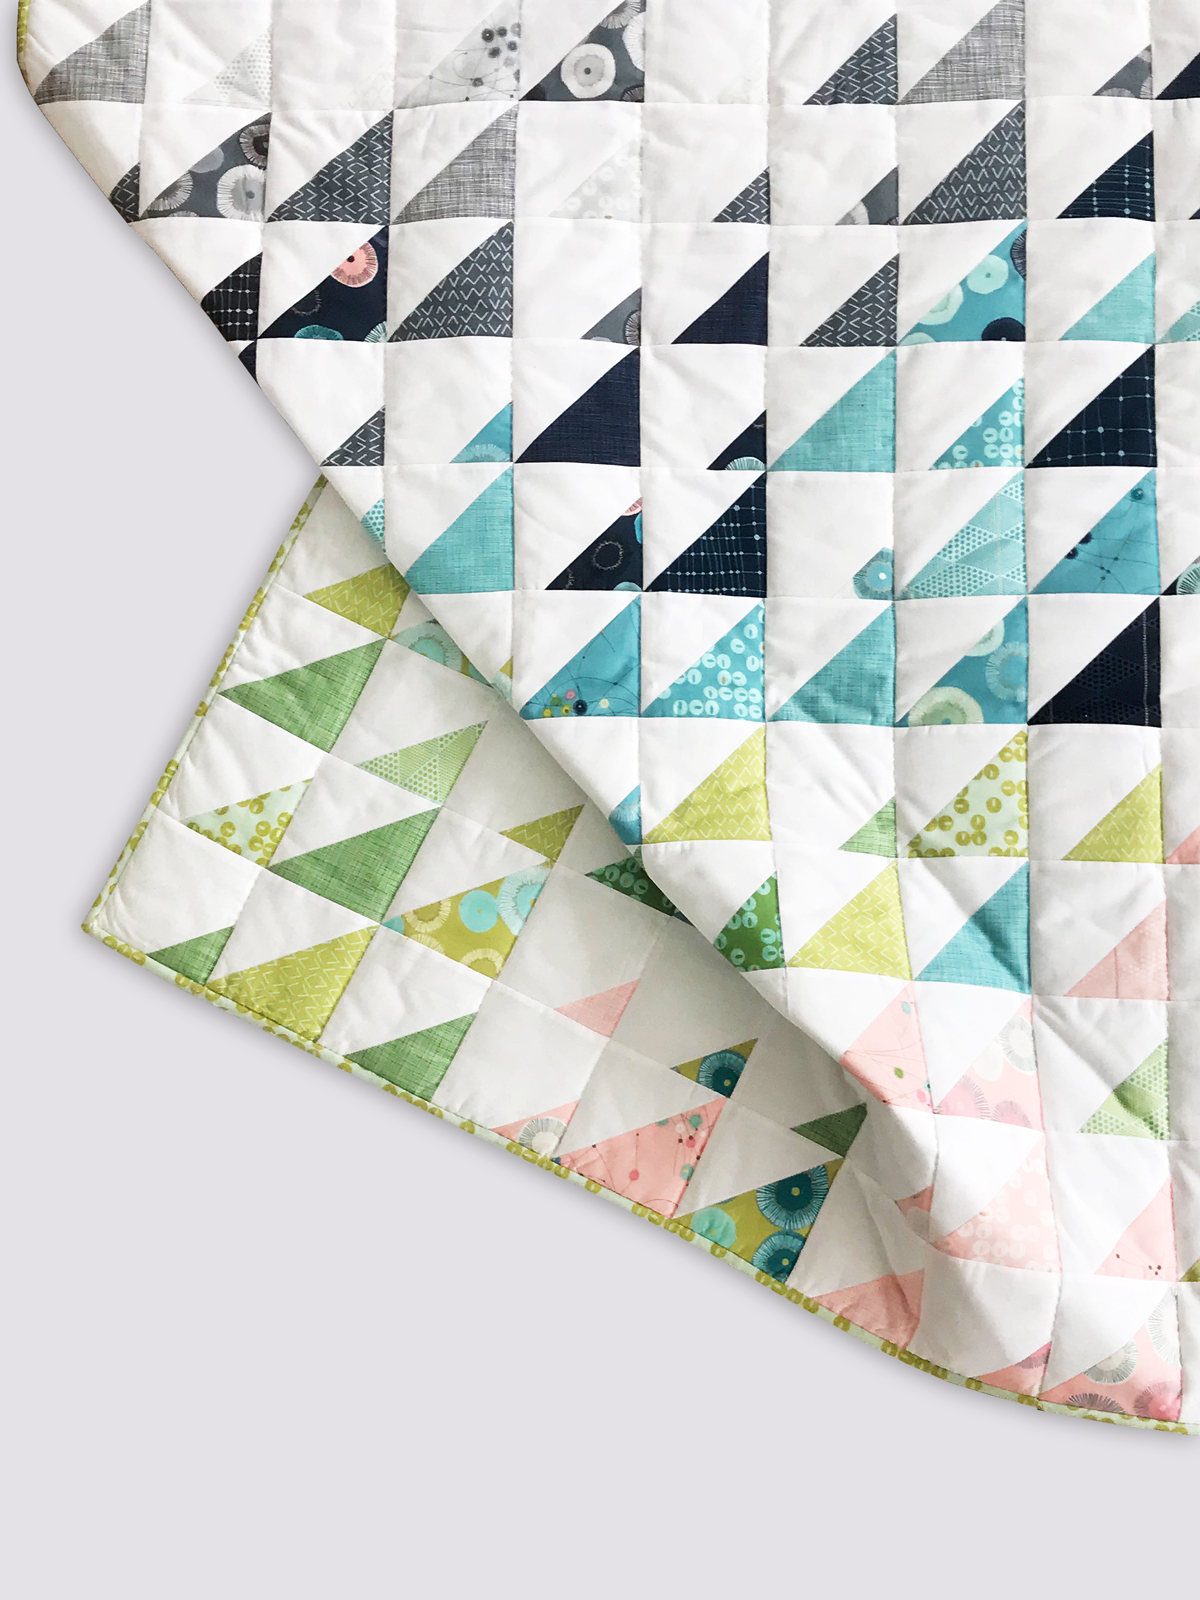 Sew this stylish, inviting quilt using Zen Chic's Day in Paris Fabric line with Purl Soho's Prism quilt free pattern.